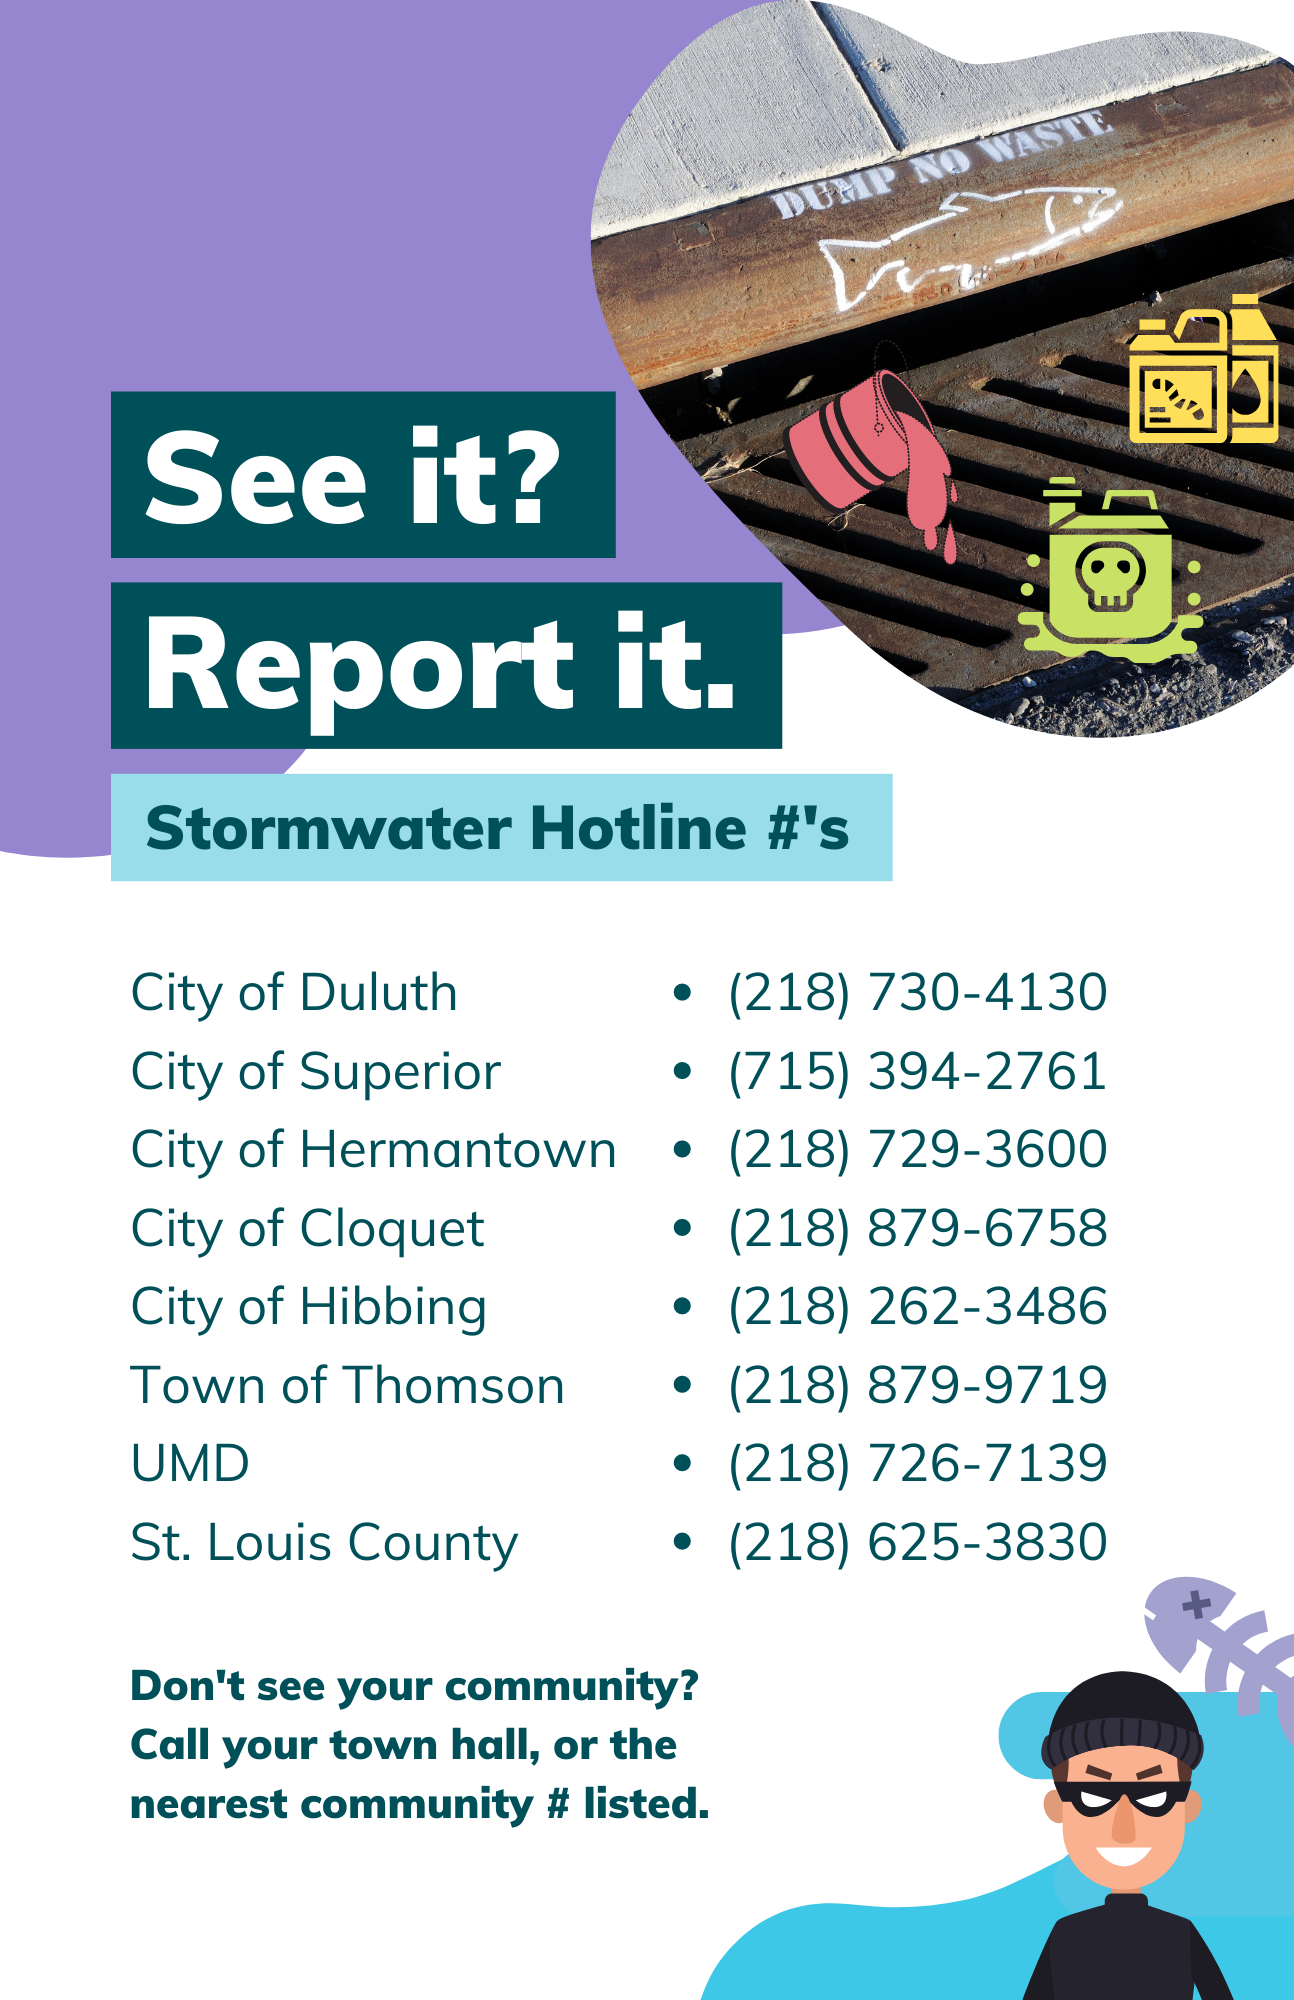 Stormwater hotline numbers for Western Lake Superior communities to call & report an illicit discharge. A graphic of a criminal smiles menacingly while thinking about polluting water with illicit discharge against a photo of a metal storm drain. 'See it? Report it. Stormwater Hotline #'s.   City of Duluth - (218) 730-4130, City of Superior - (715) 394-2761, City of Hermantown - (218) 729-3600, City of Cloquet - (218) 879-6758, City of Hibbing - (218) 262-3486, Town of Thomson - (218) 879-9719, U of M Duluth - (218) 726-7139, St. Louis County - (218) 625-3830'